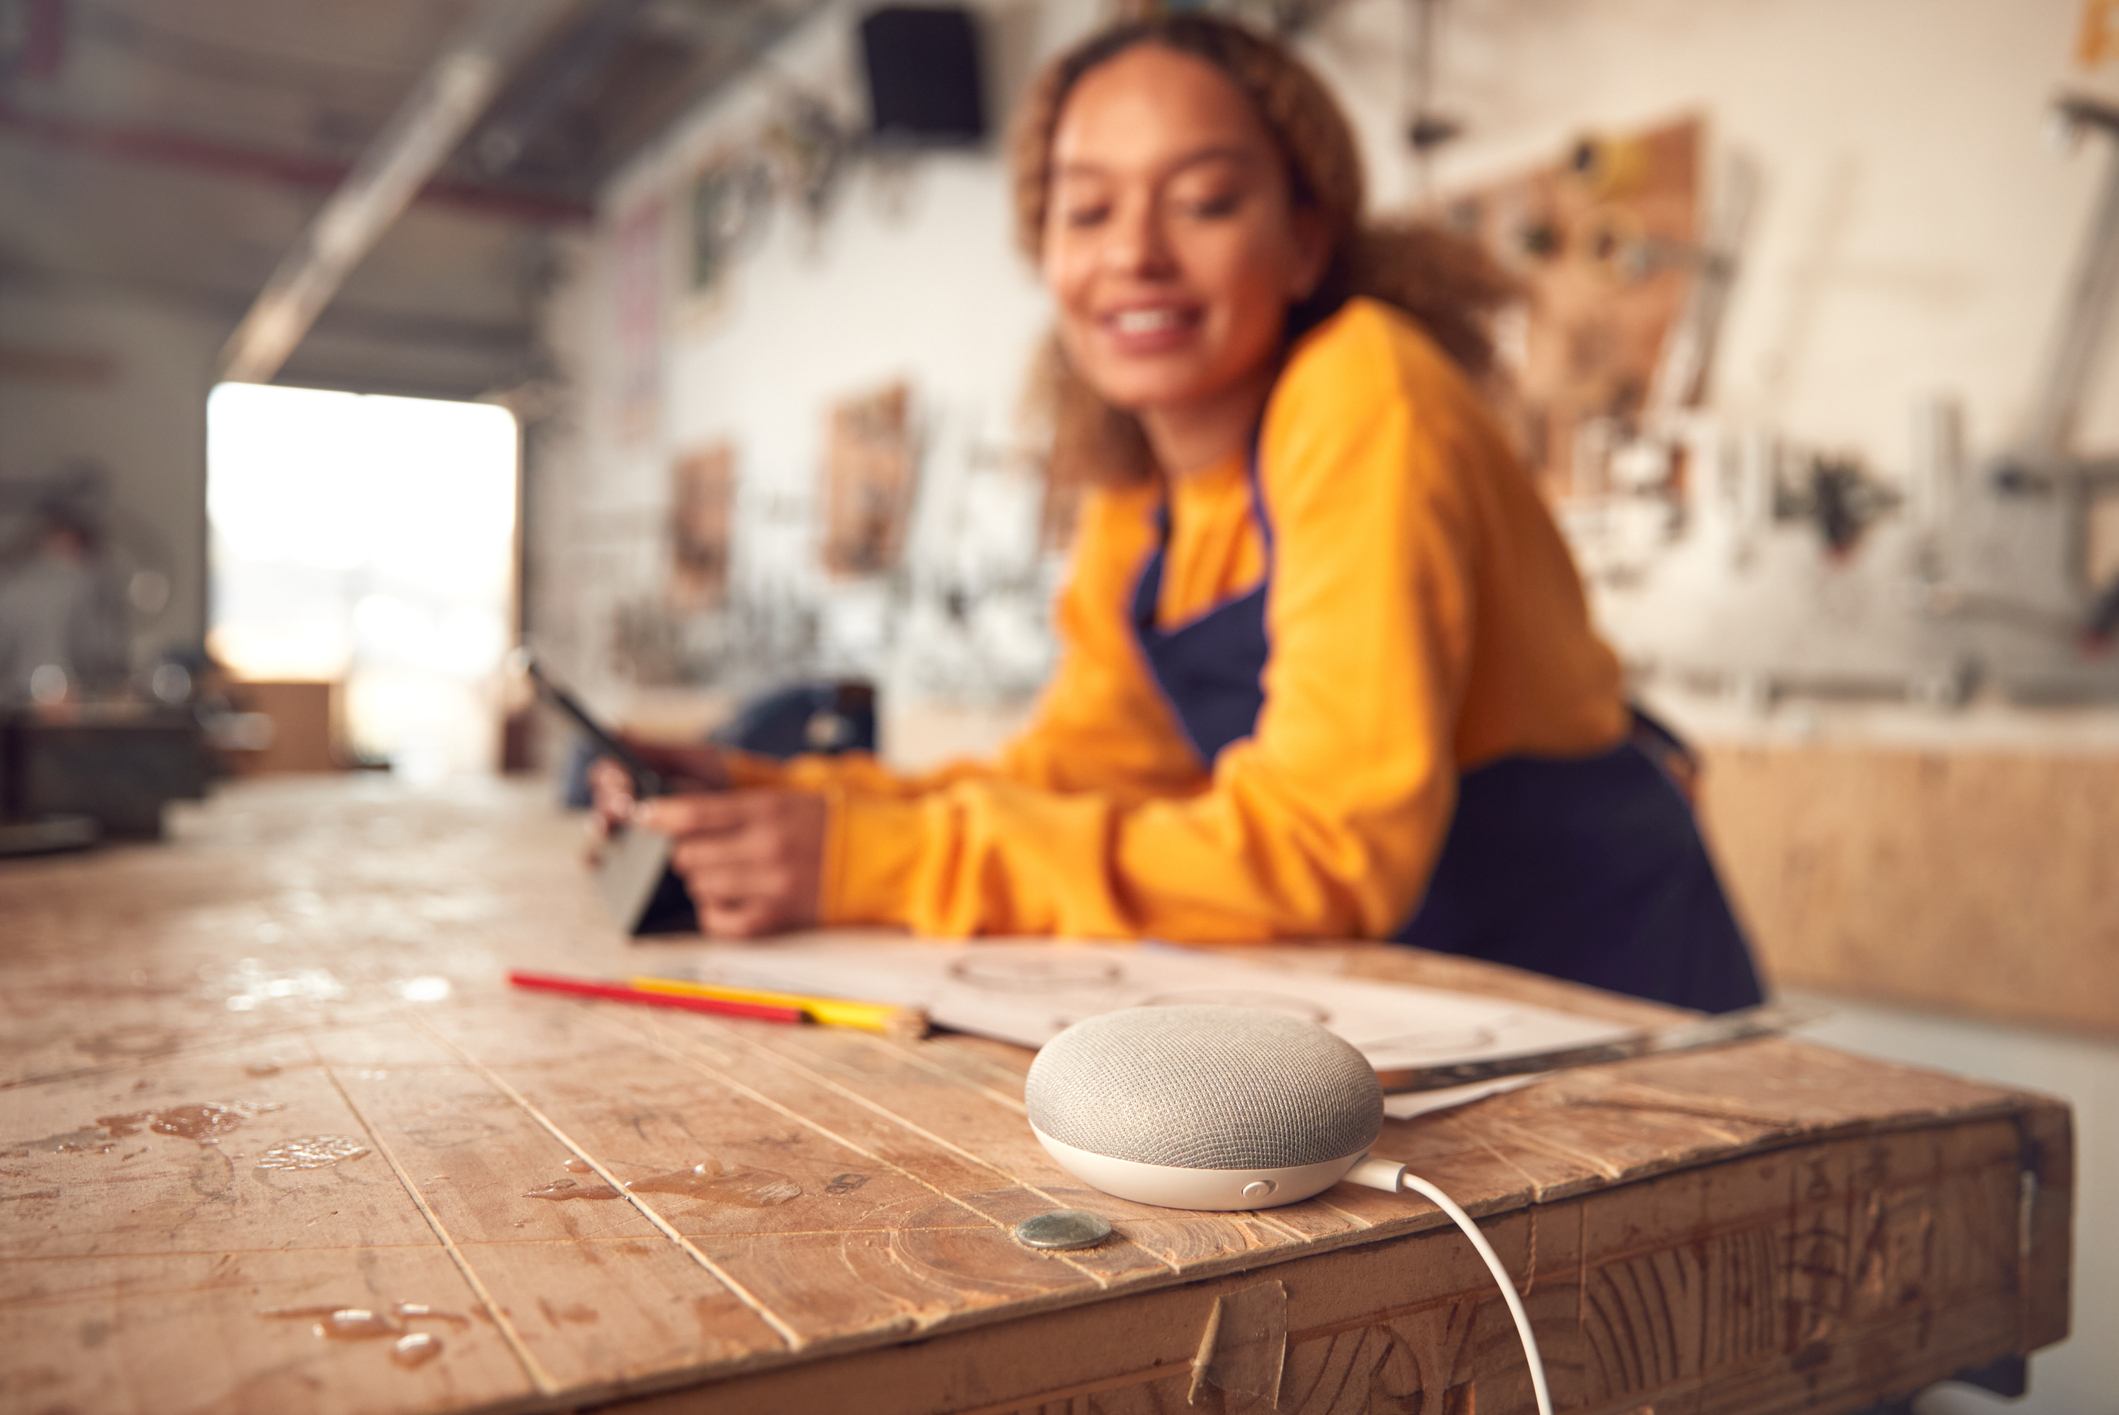 Woman working and using smart speaker